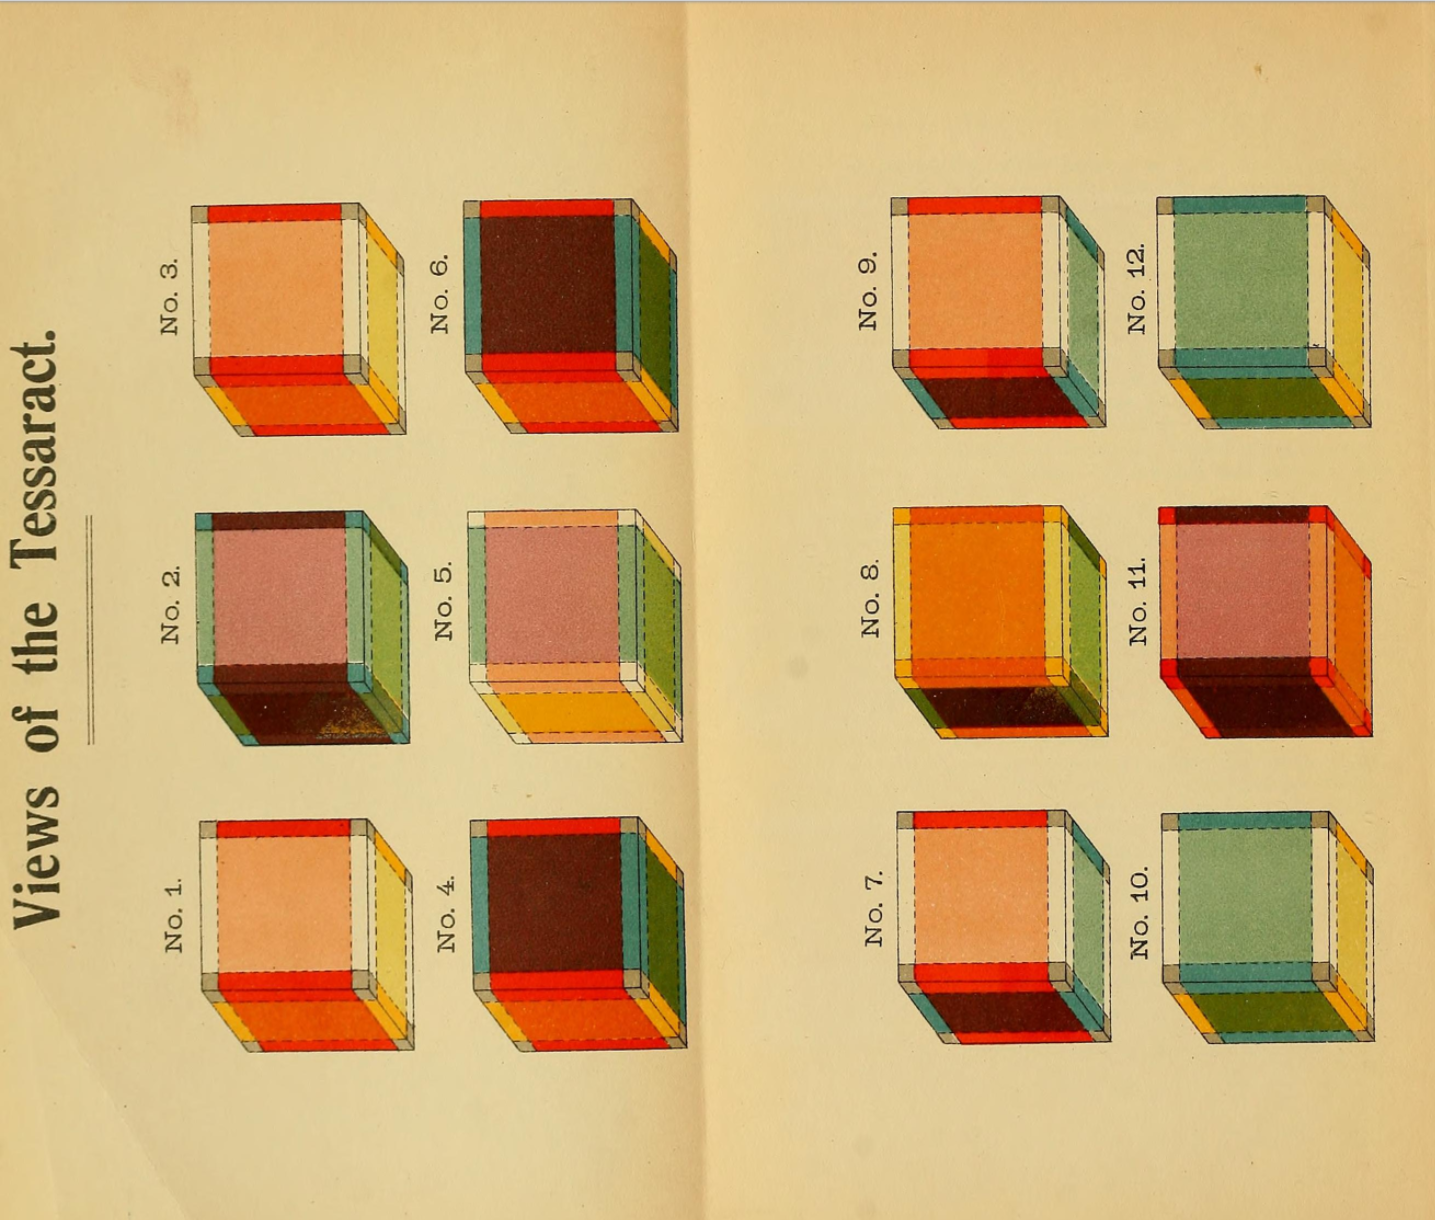 Fold out from the 1906 C. Howard Hinton book, The Fourth Dimension. Links to the Internet Archive repository for the book.